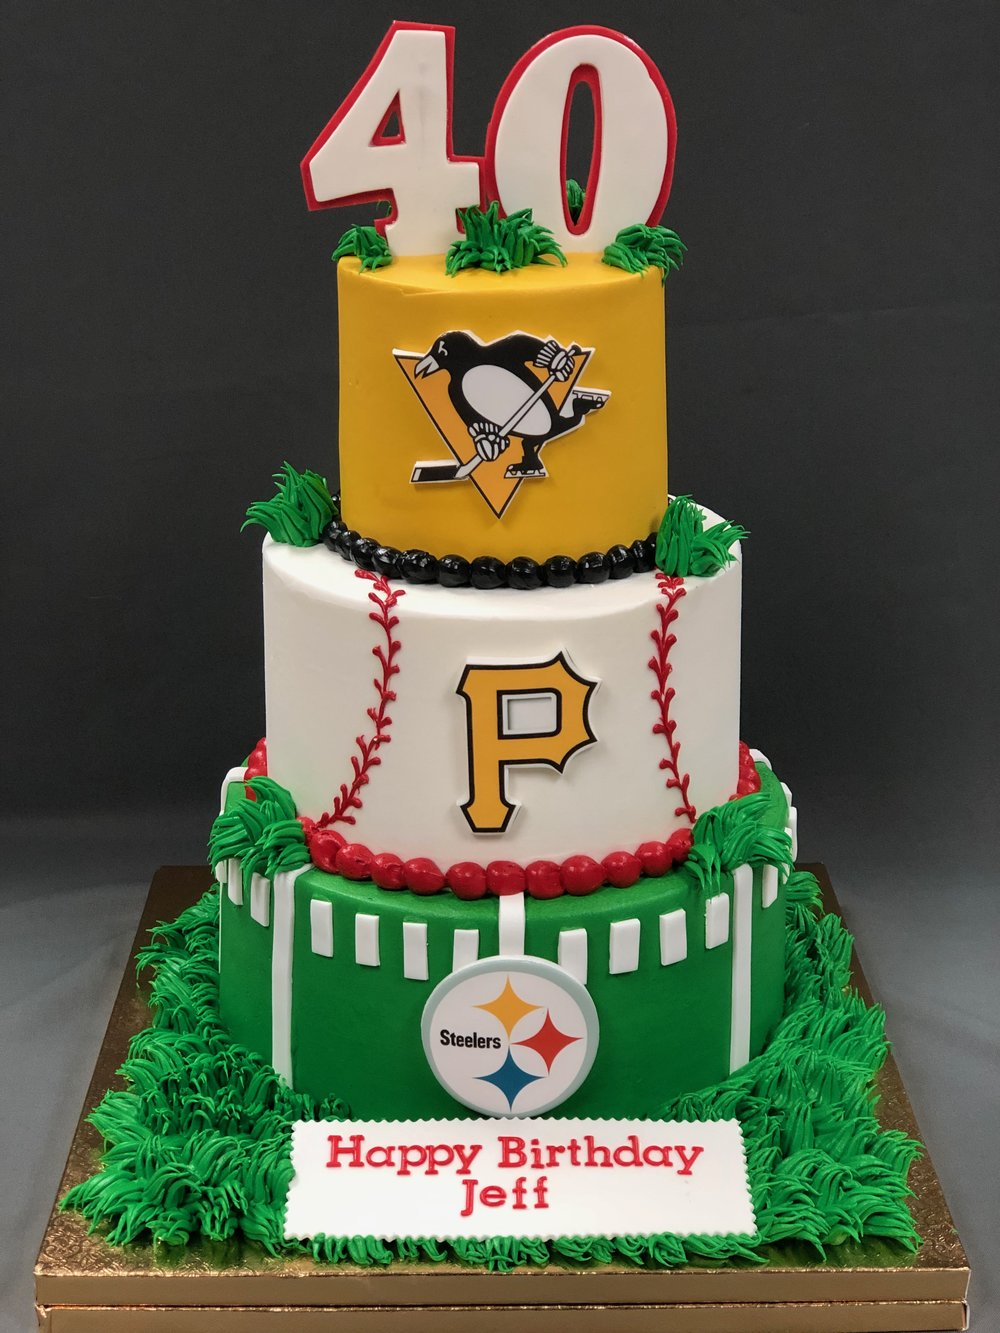 Sensational Pittsburgh Team Fans 40Th Birthday Cake Skazka Desserts Bakery Funny Birthday Cards Online Alyptdamsfinfo